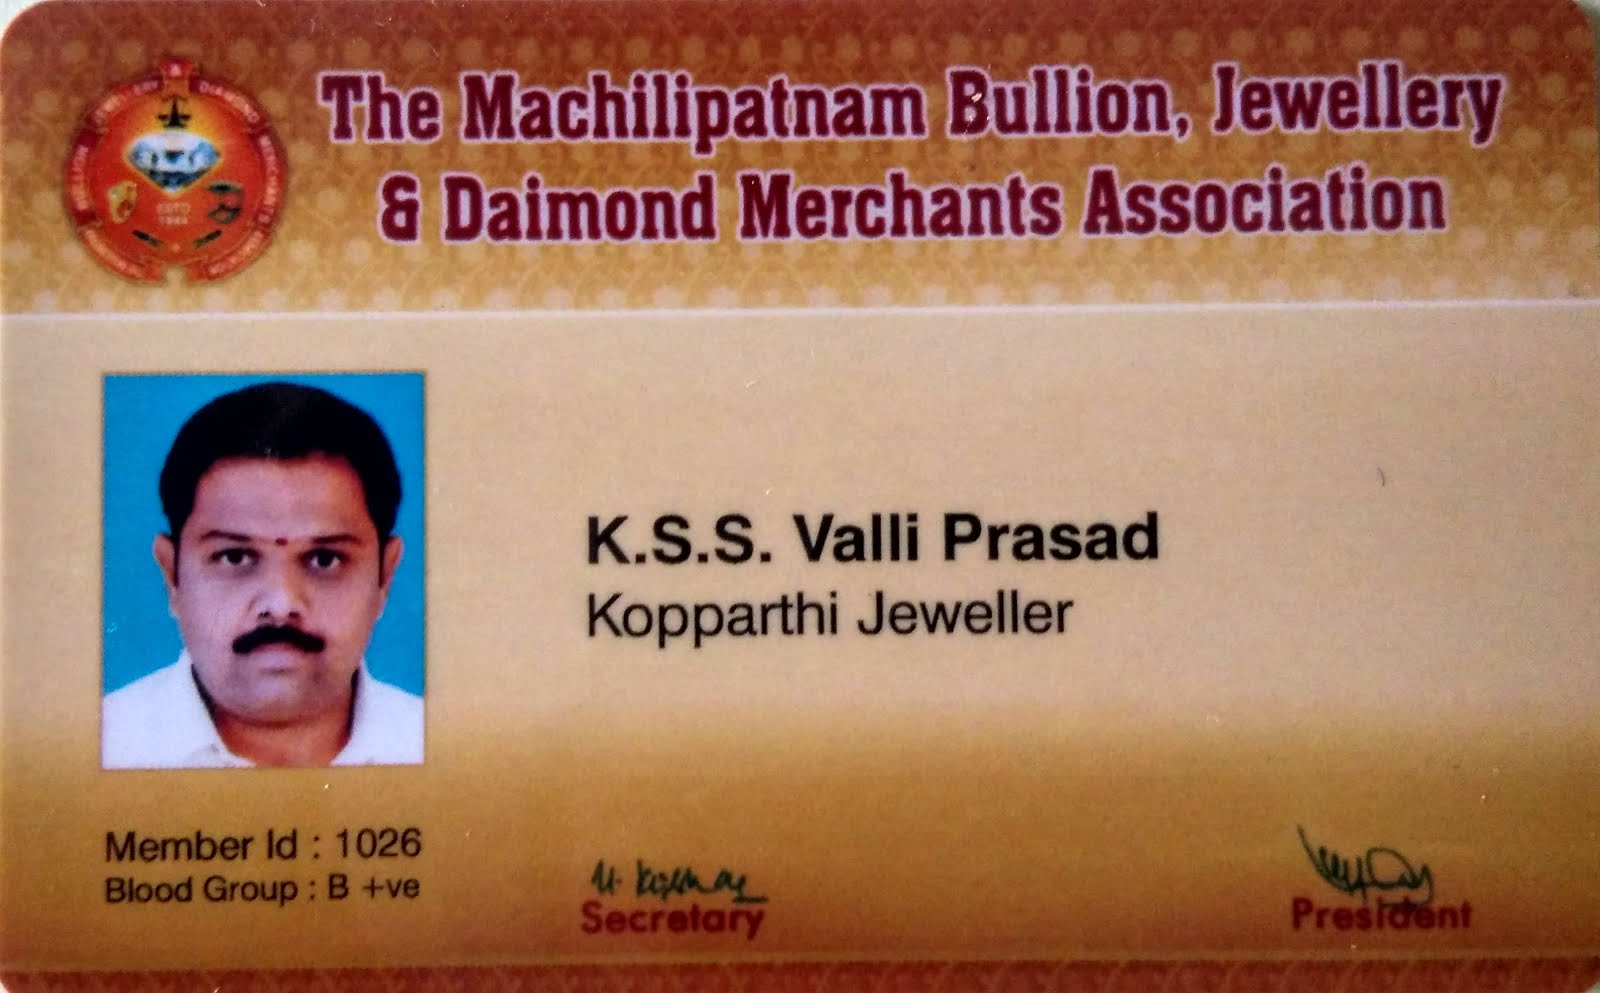 THE MACHILIPATNAM BULLION, JEWELLERY & DAIMOND MERCHANTS ASSOCIATION